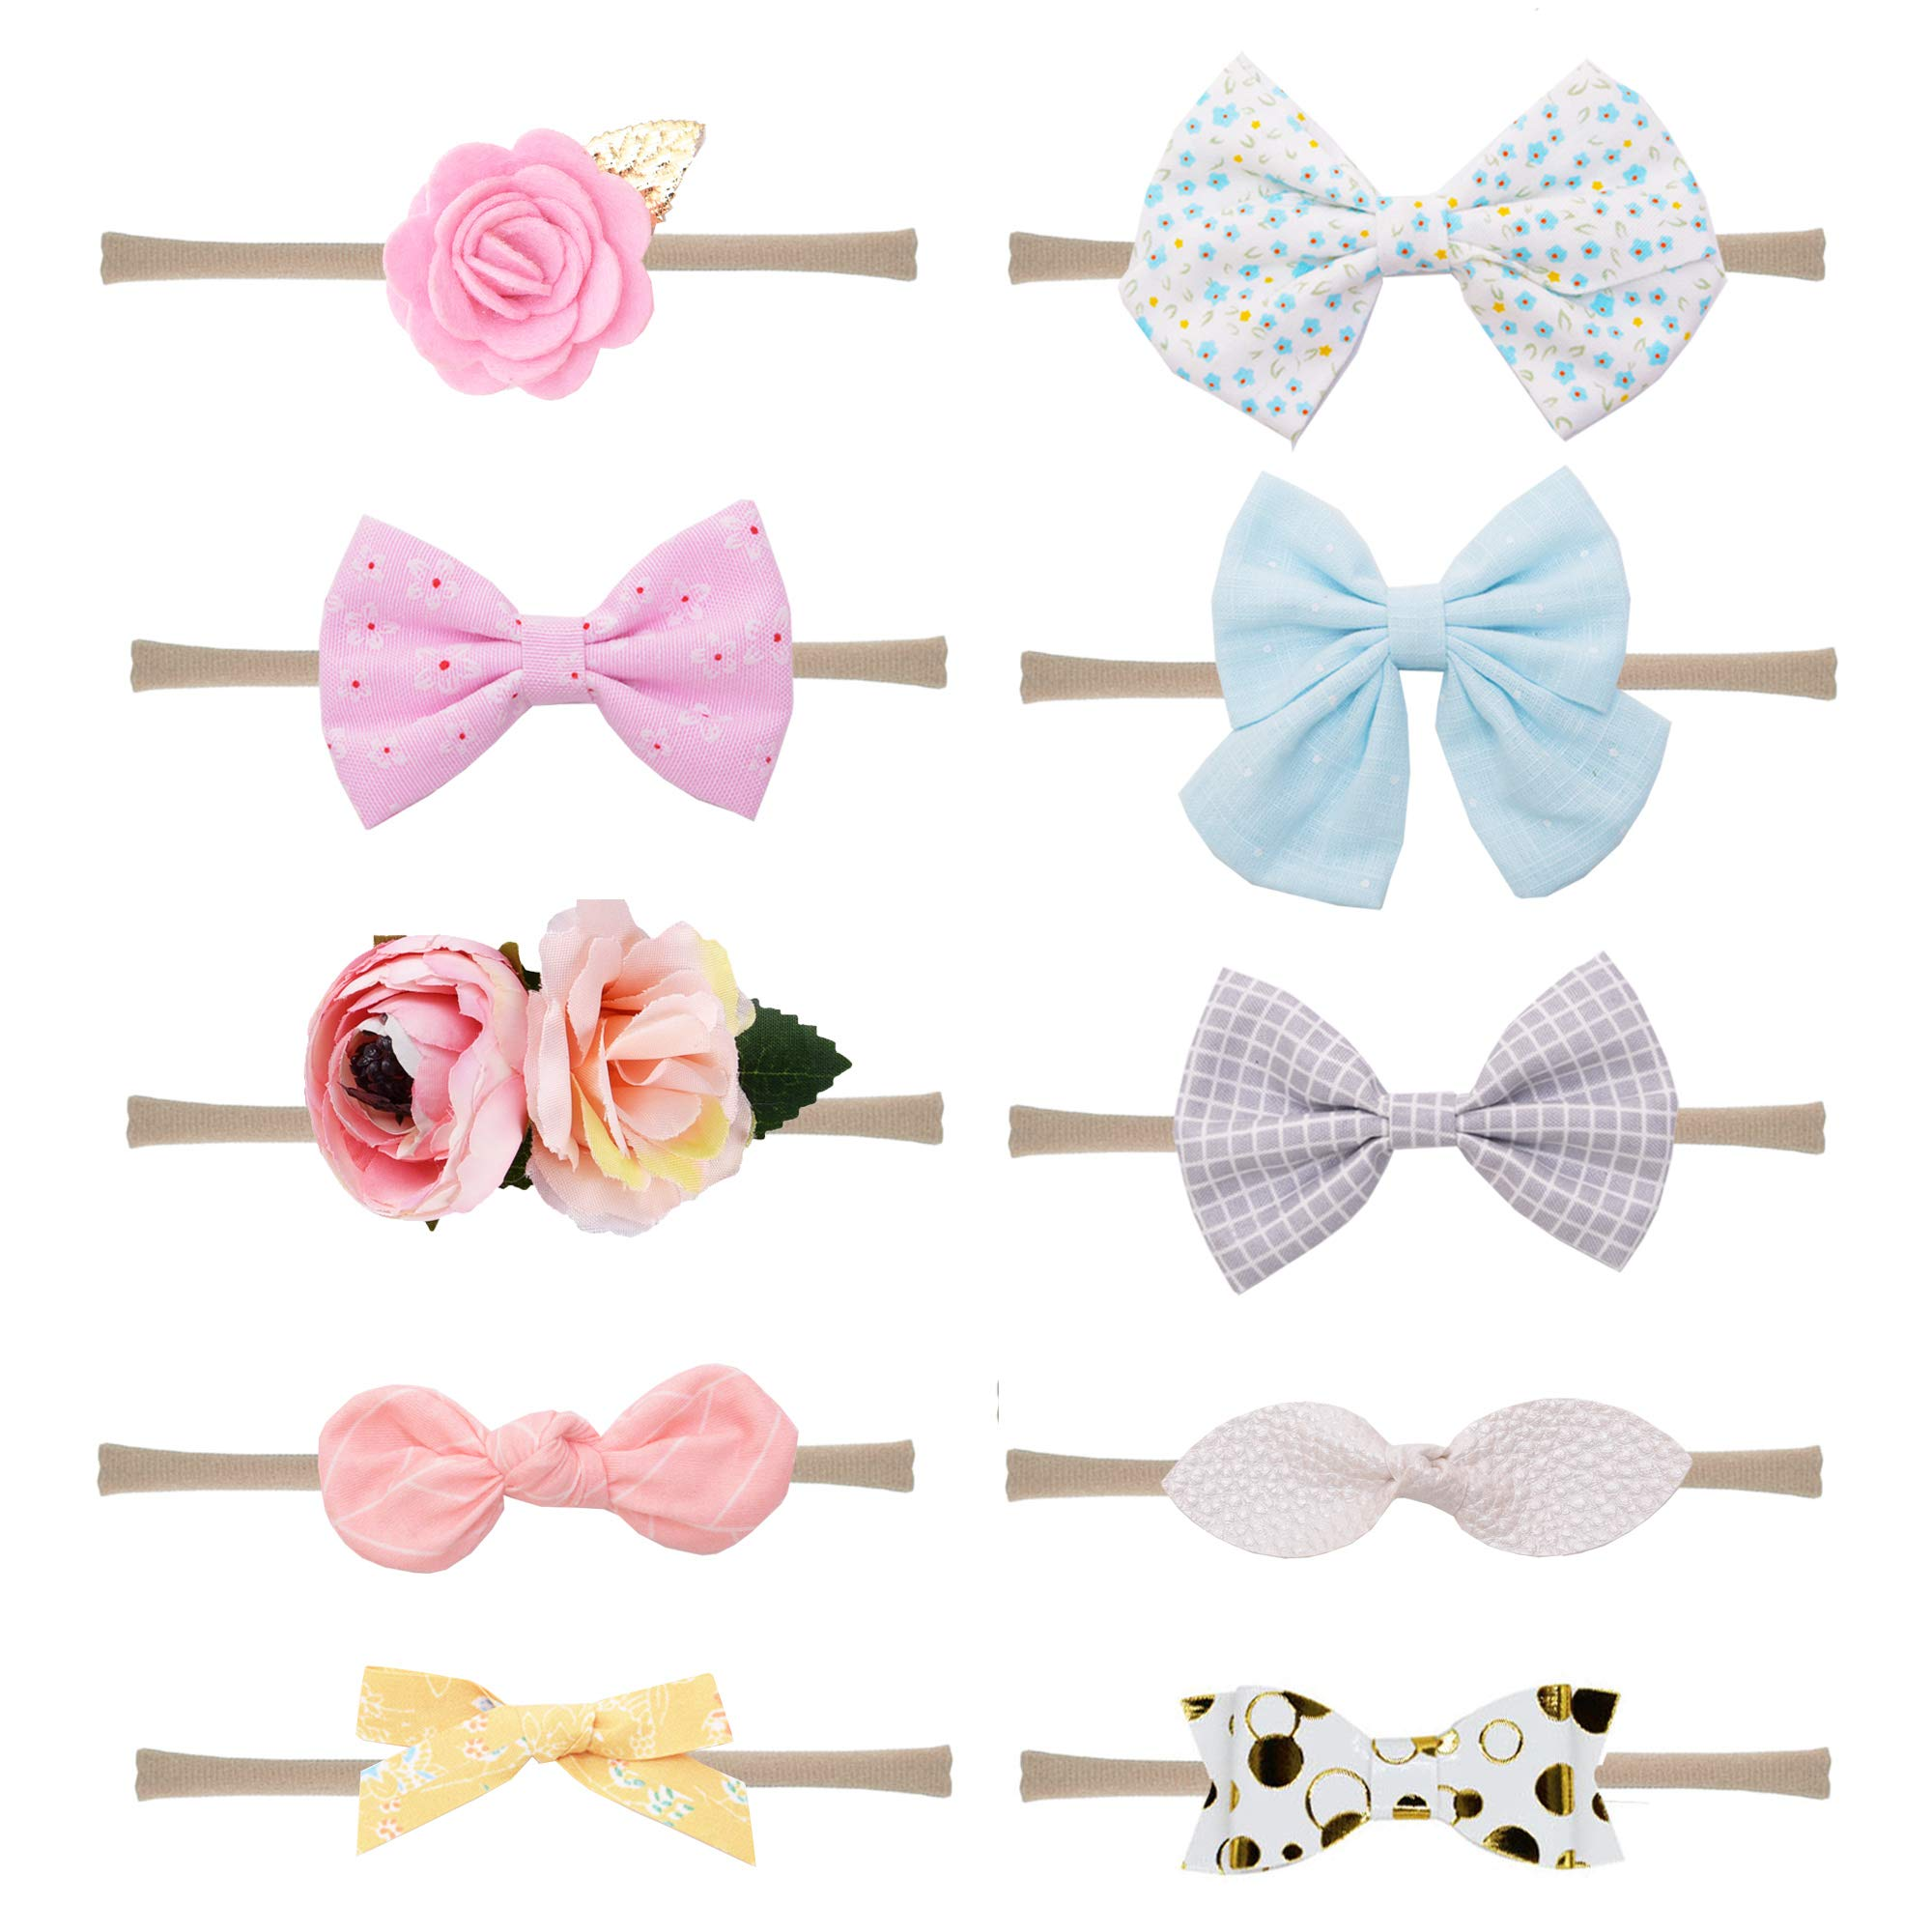 Girl's Accessories Strong-Willed Korea Fabric Tie Knot Hair Bands Rabbit Ears Hairband Flower Crown Headbands For Girls Hair Bows Hair Accessories D